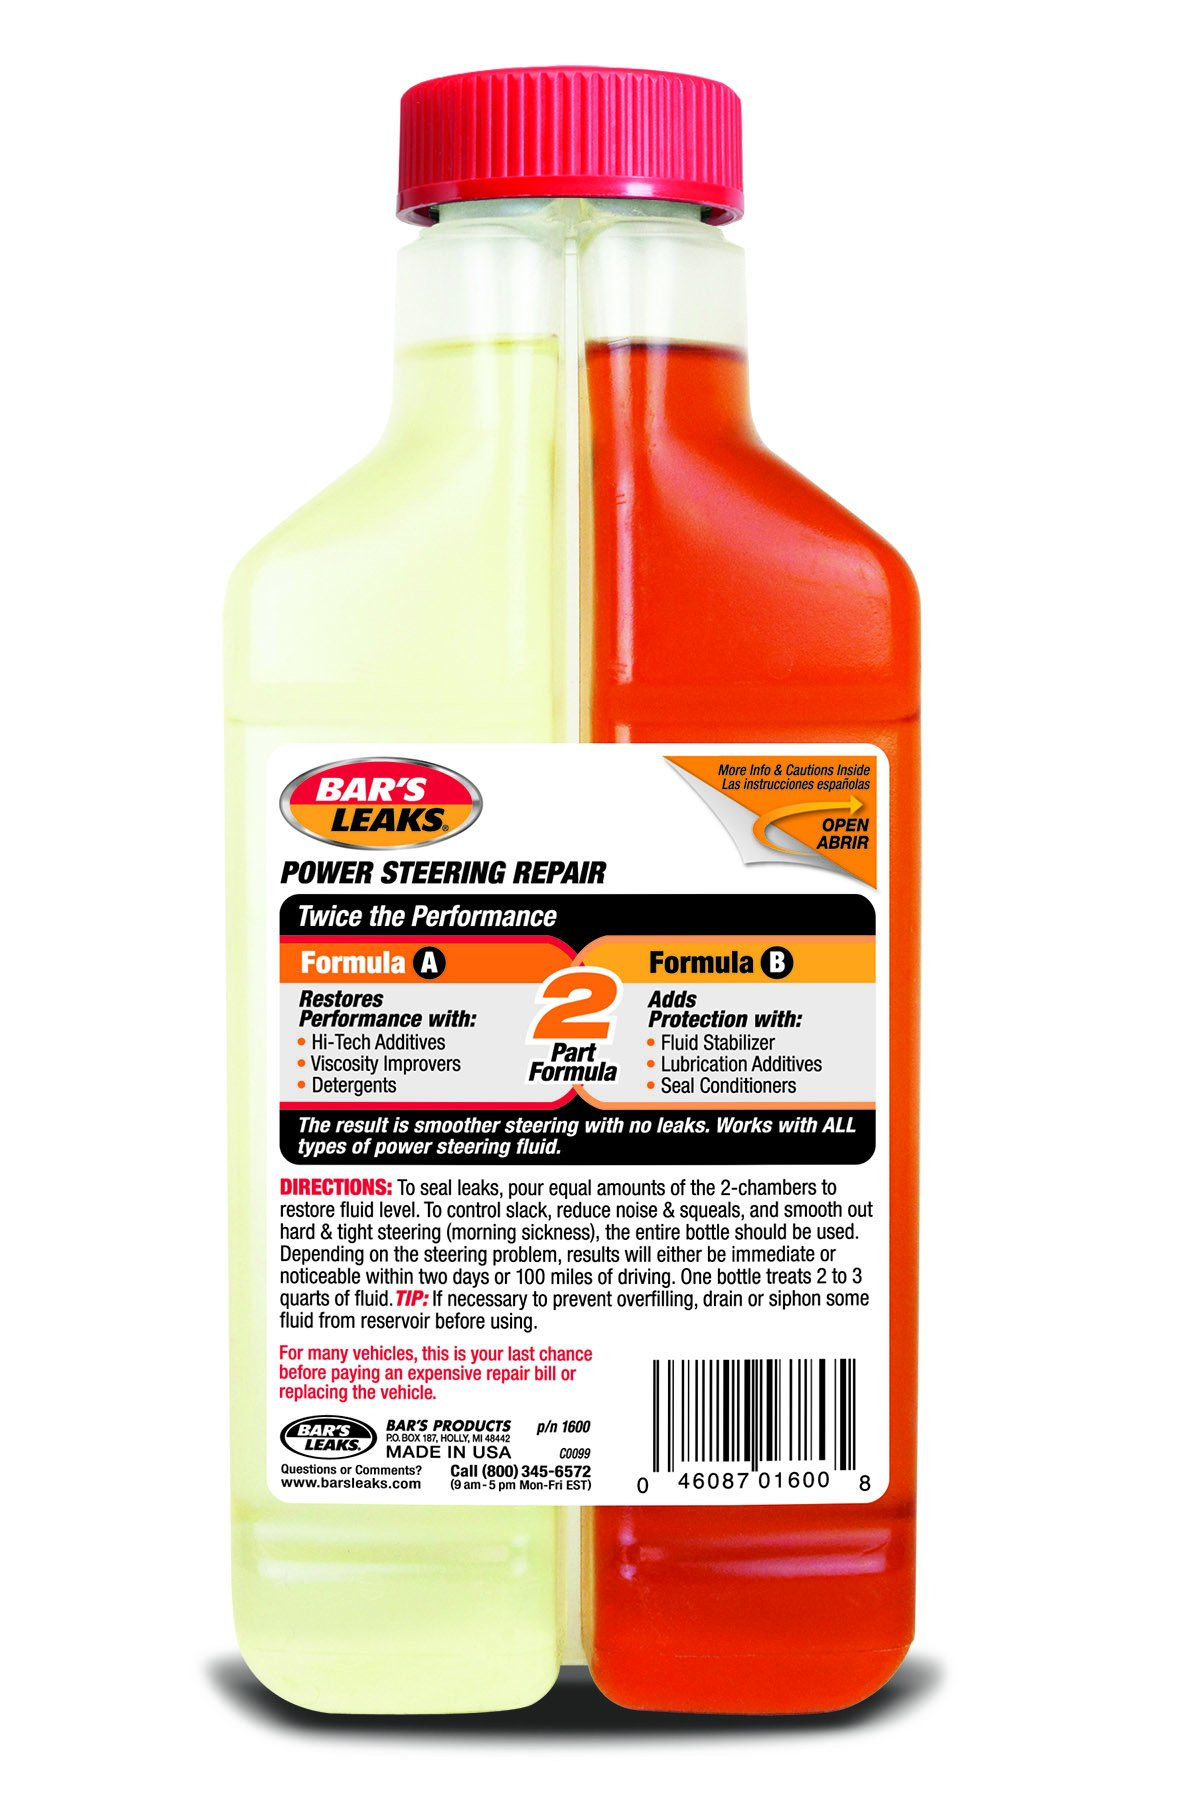 Bar's Leaks 1600-4PK Power Steering Repair-16 oz, (Pack of 4), 16. Fluid_Ounces, 4 Pack by Bar's Products (Image #2)